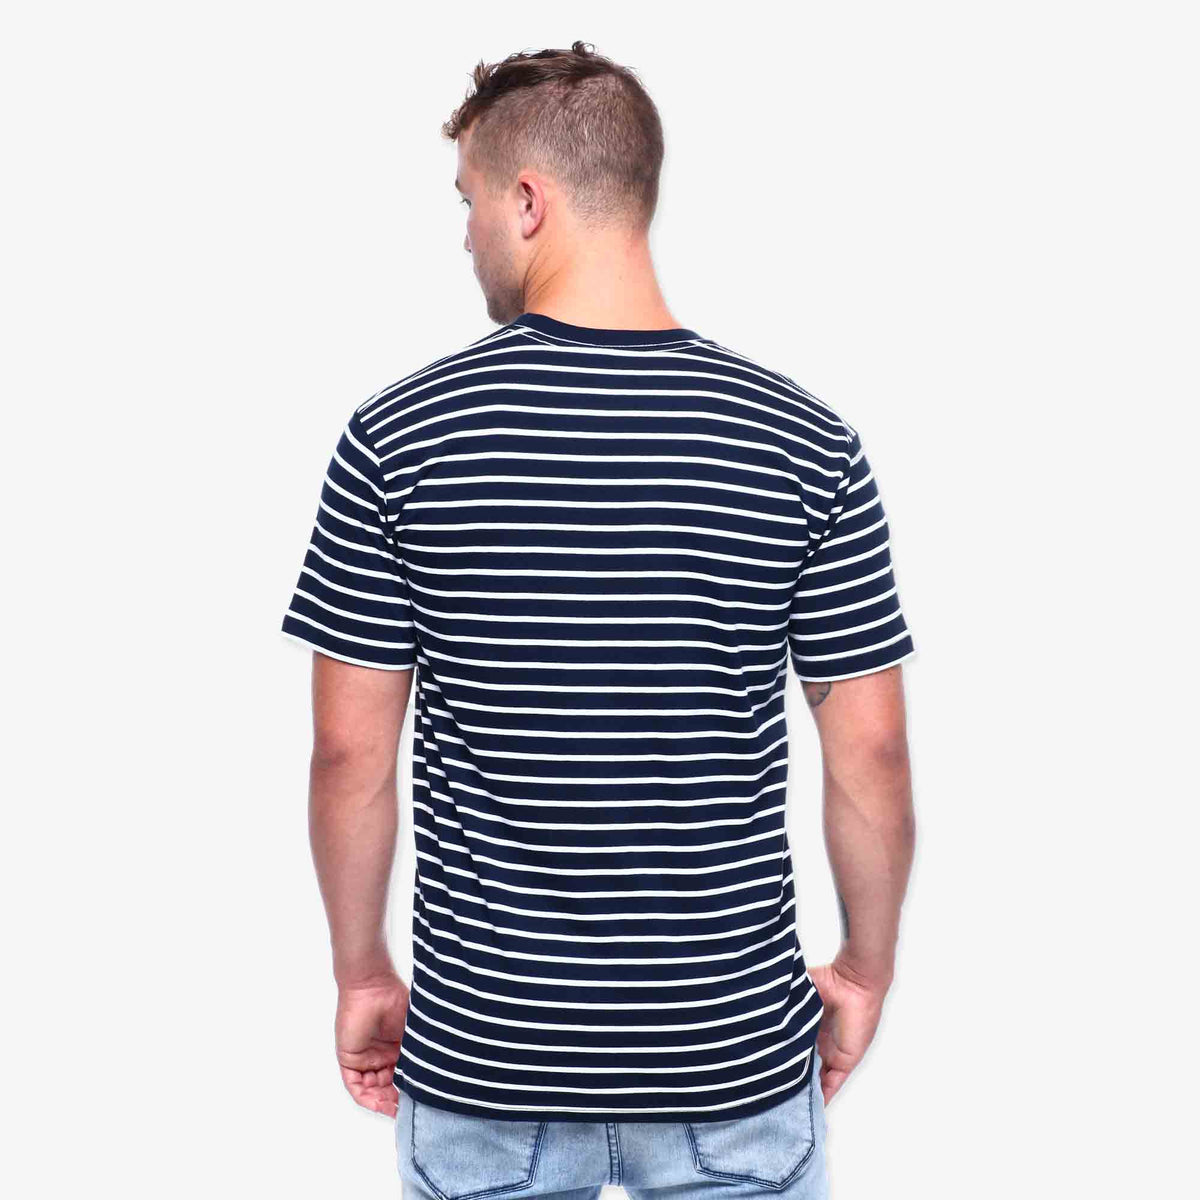 Mariner Stripe Tee - Navy & White